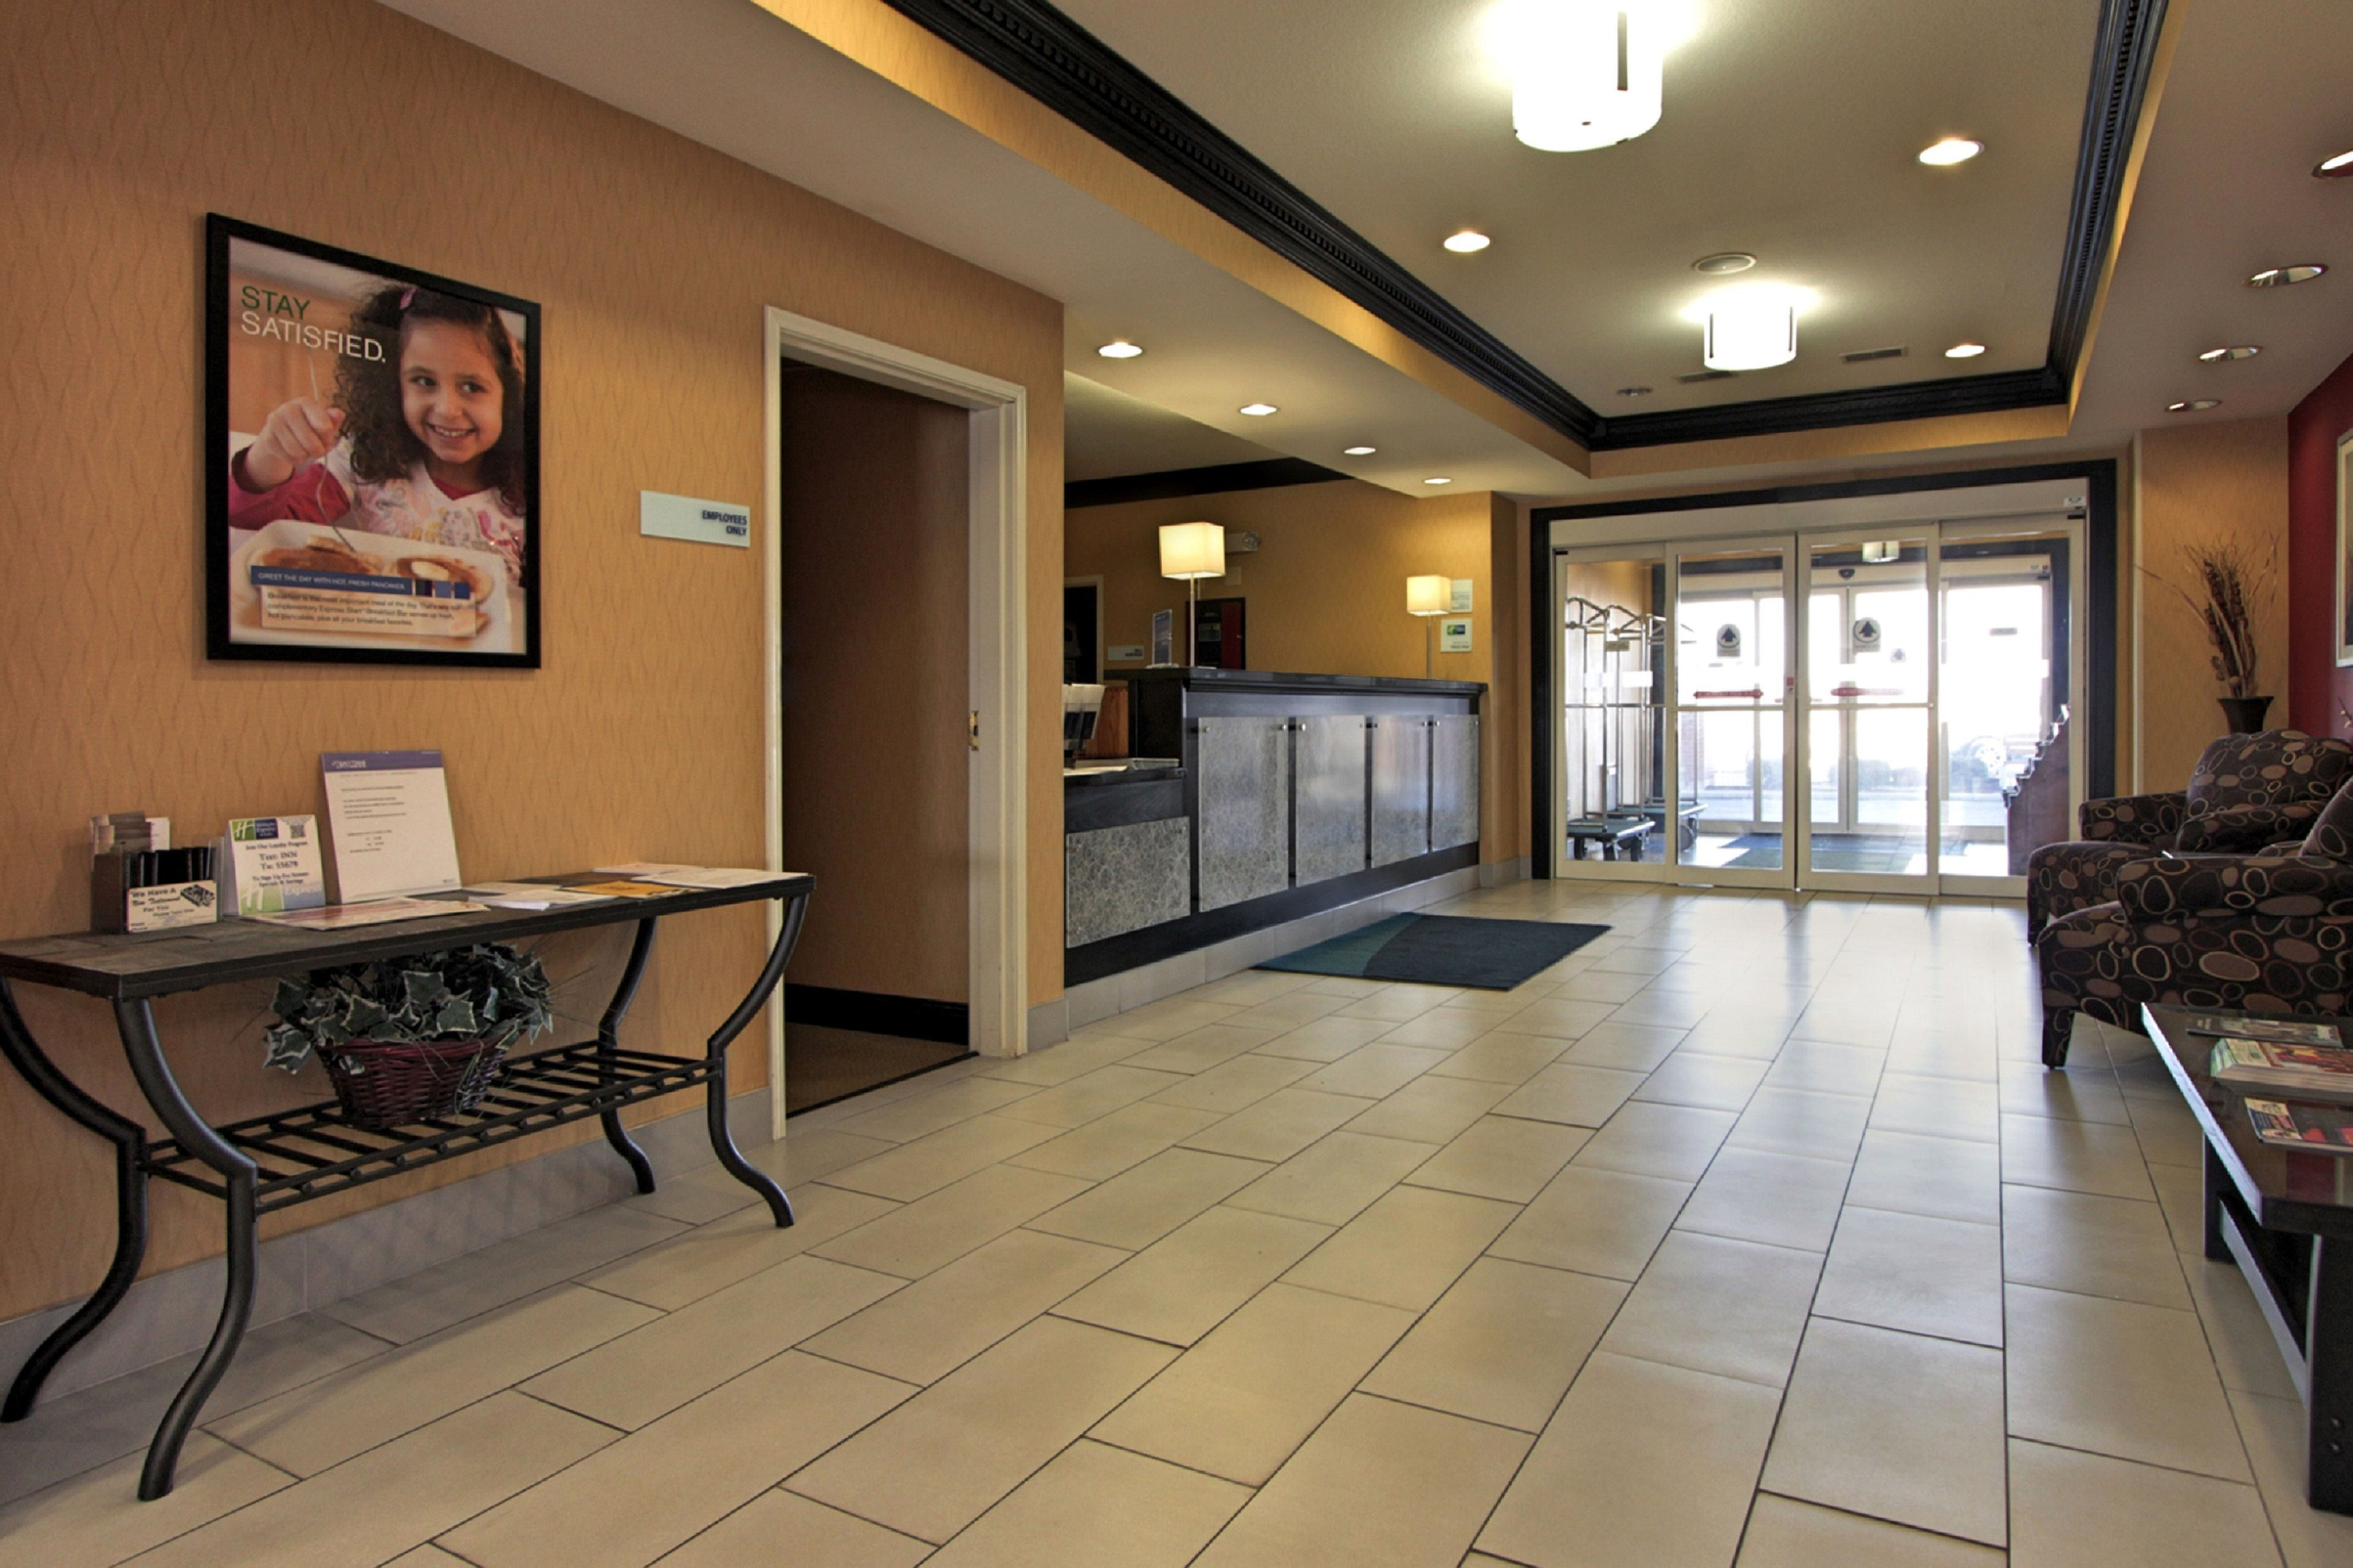 Holiday Inn Express & Suites Defiance image 5